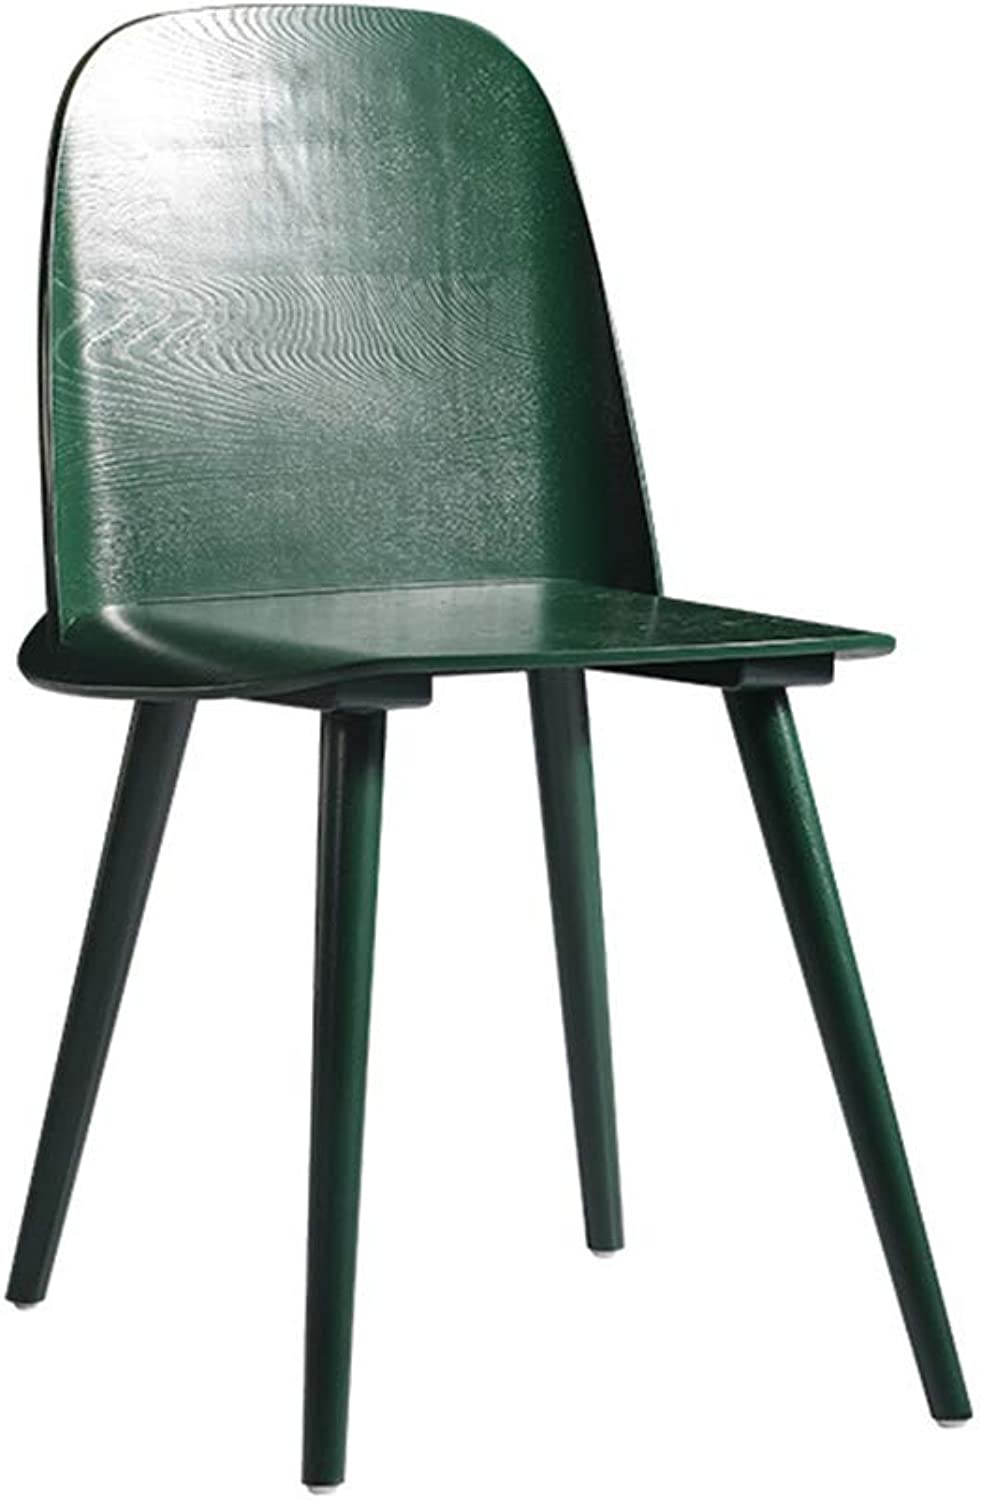 Home Bar Stool Chair Solid Wood Bar Stool Chair Dining Chair Modern Minimalist Casual Fashion Creative Restaurant Backrest Chair Home Bar Furniture (color   Green)